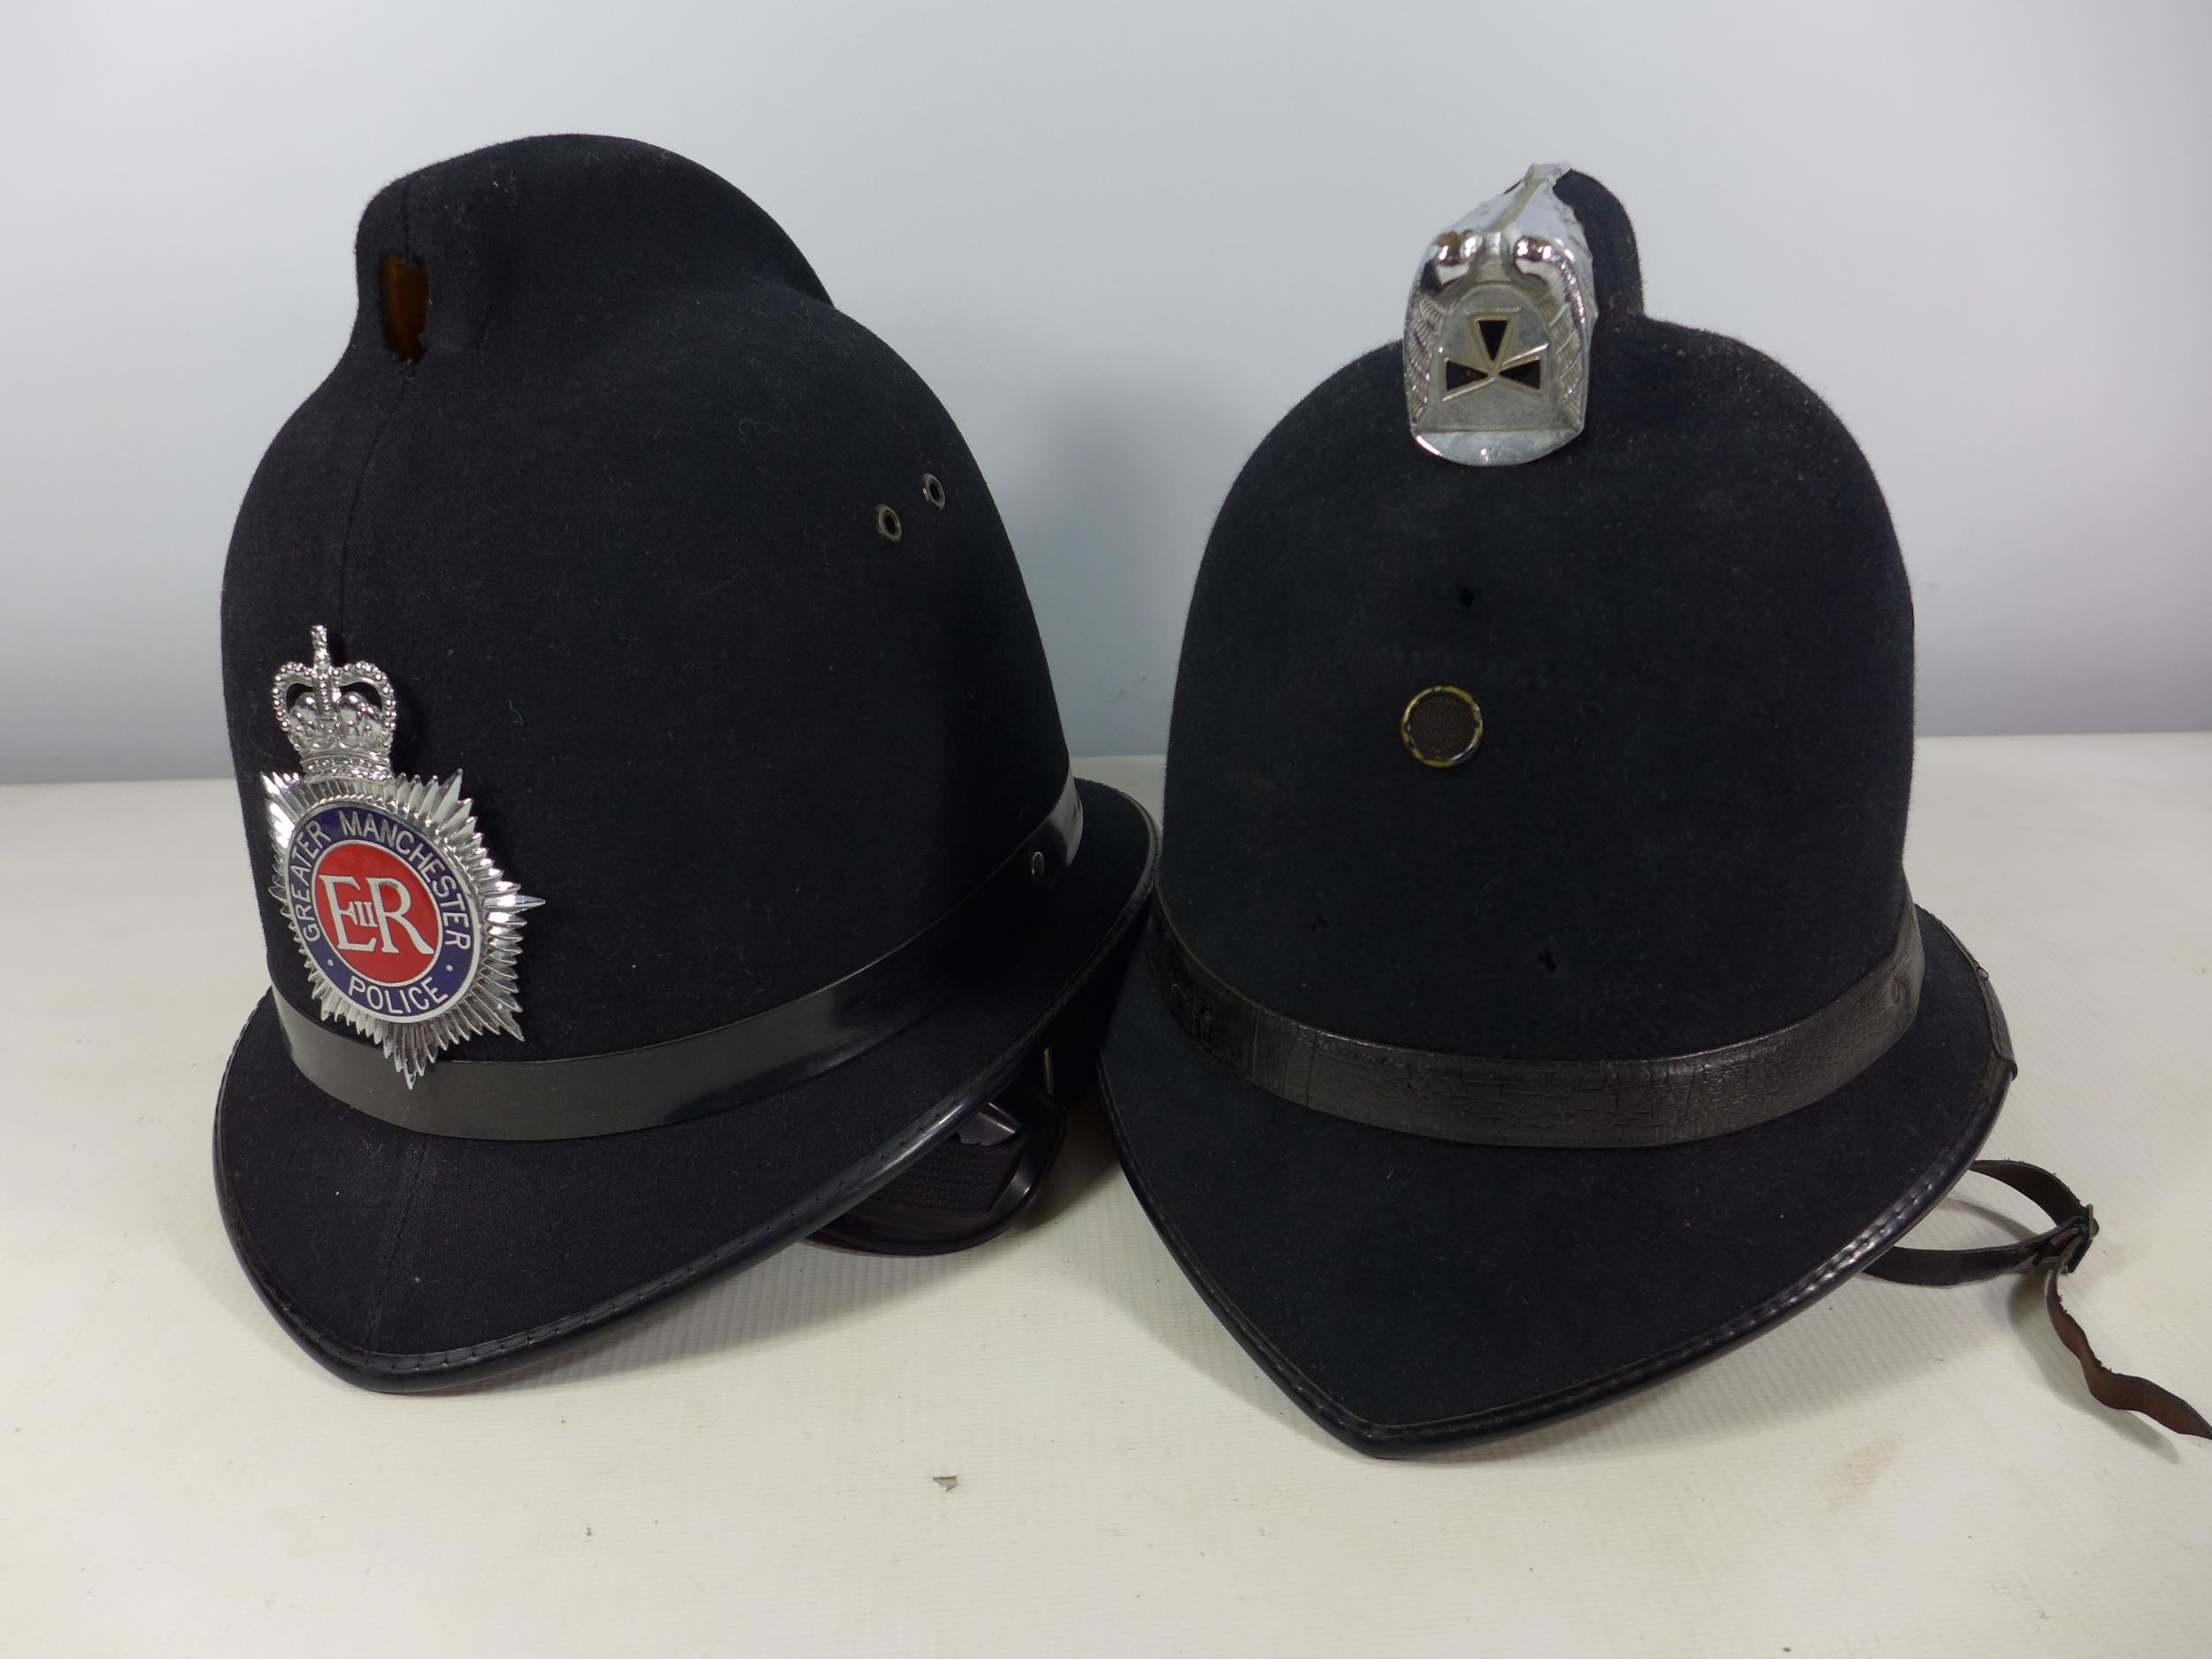 A GREATER MANCHESTER POLICE HELMET AND ANOTHER HELMET